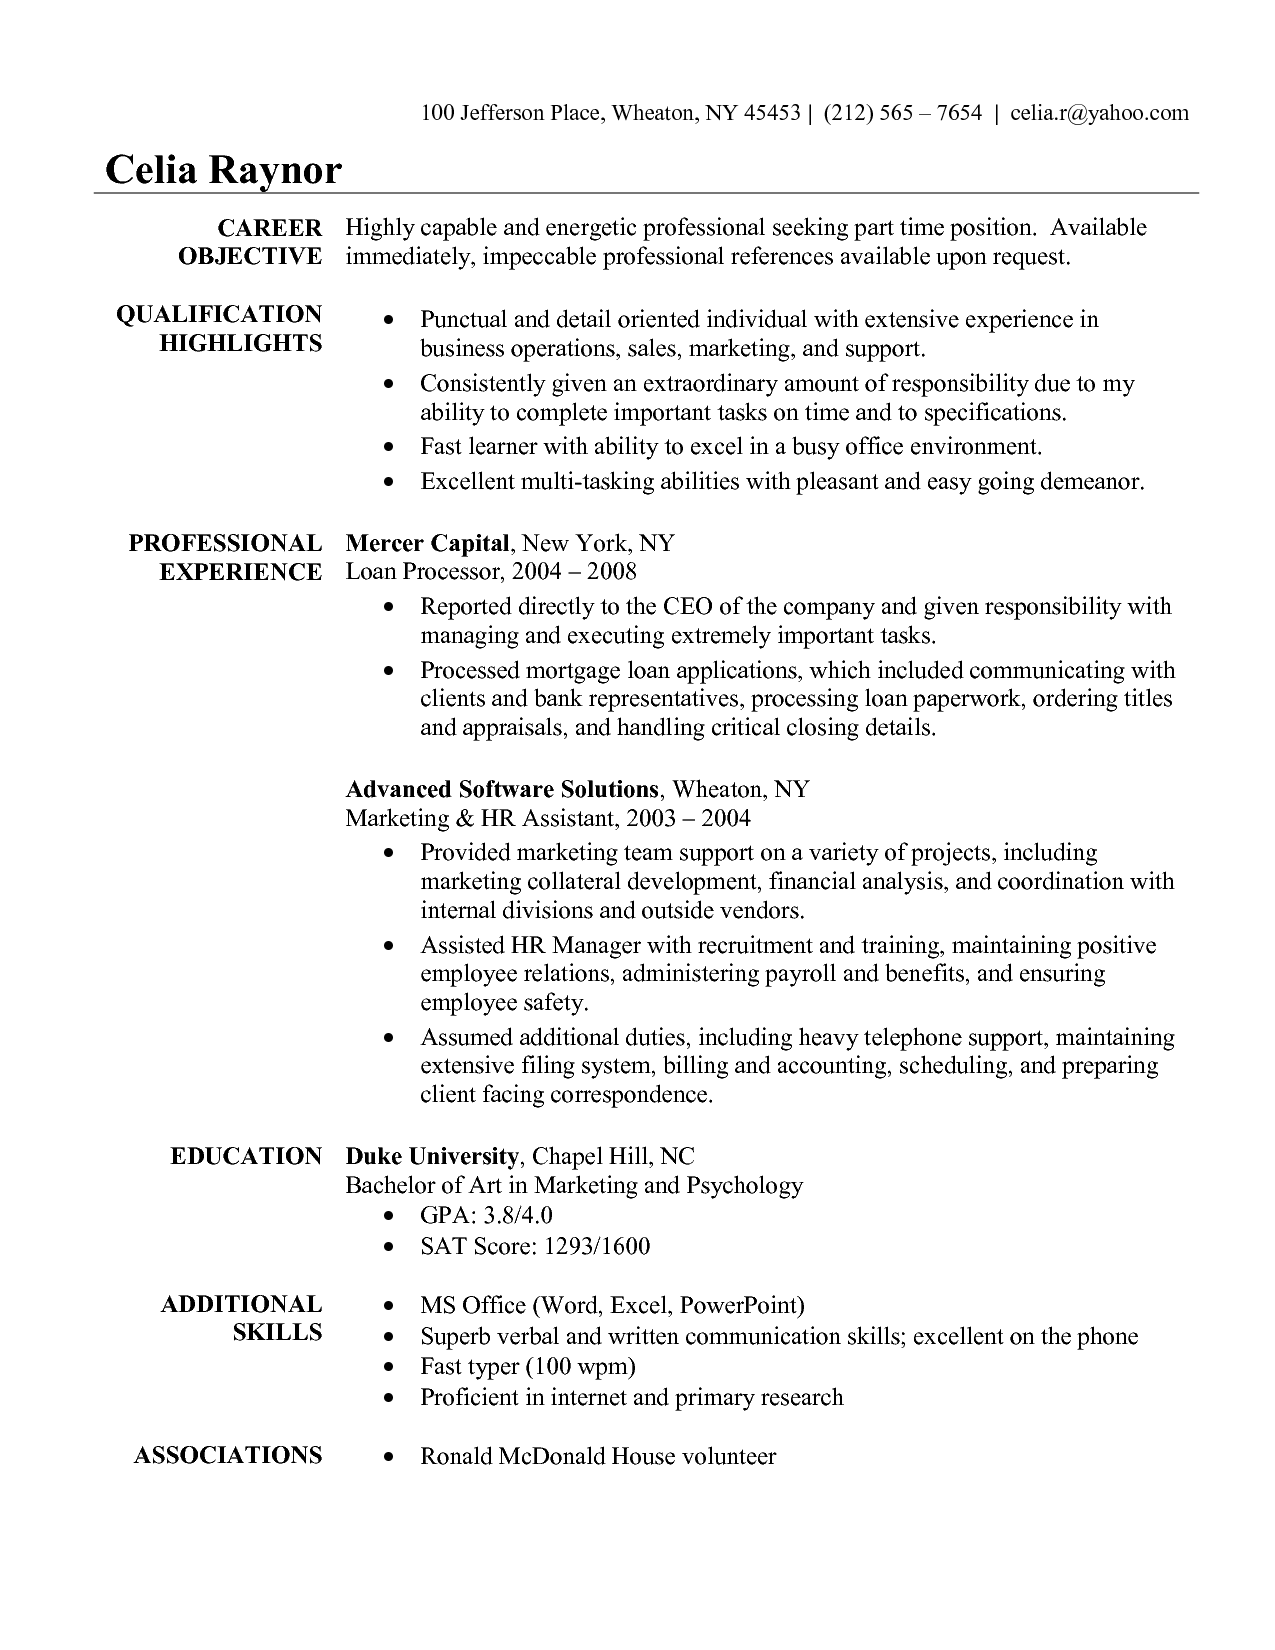 Resume Sample For Administrative Assistant Resume Samples For